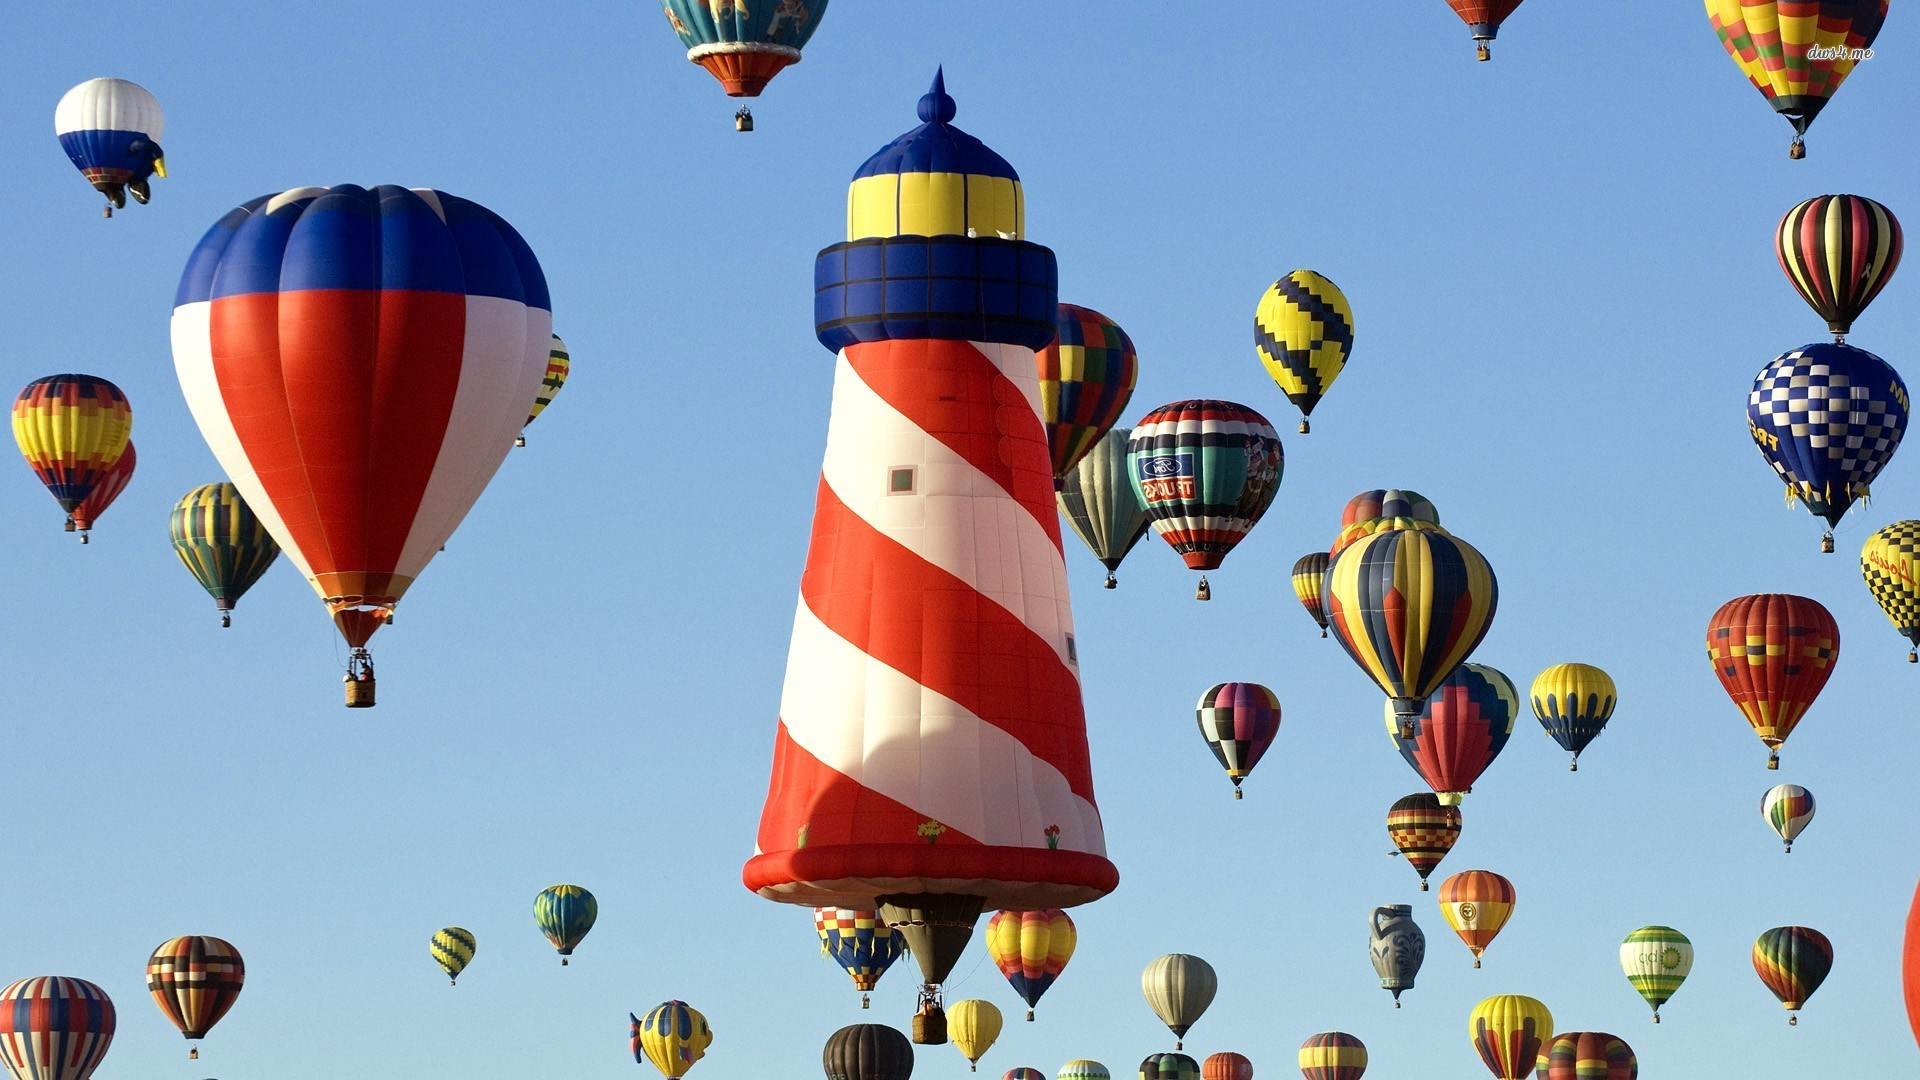 Hot Air Balloon 1920x1080 Wallpaper Teahub Io